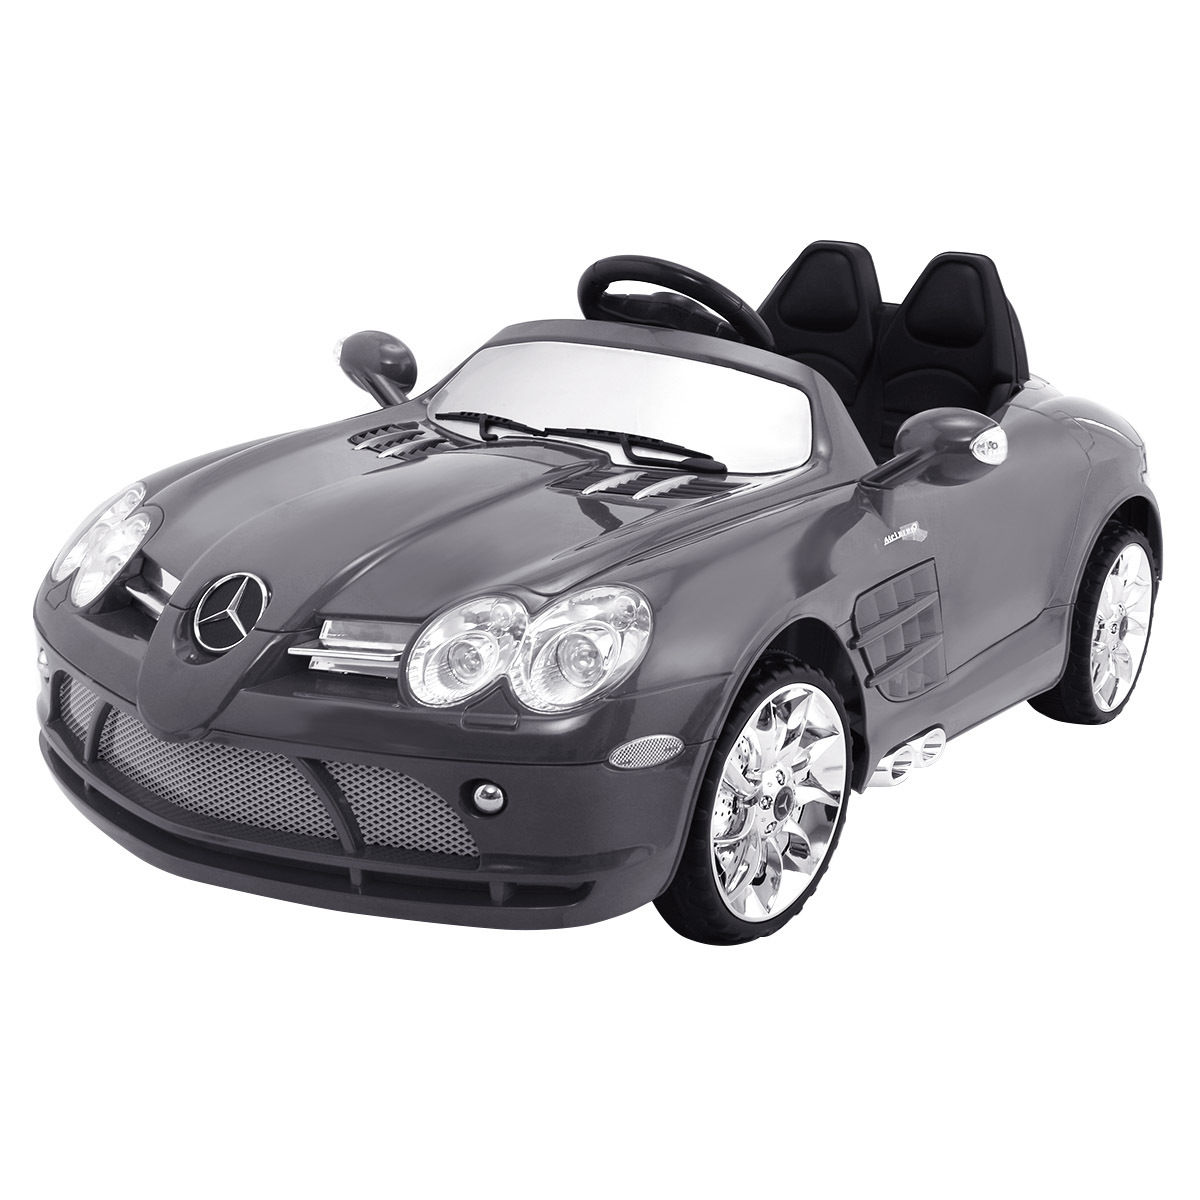 Costway Mercedes-Benz R199 Lisenced 12V Electric Kids Ride On Car RC Remote Control MP3 by Costway